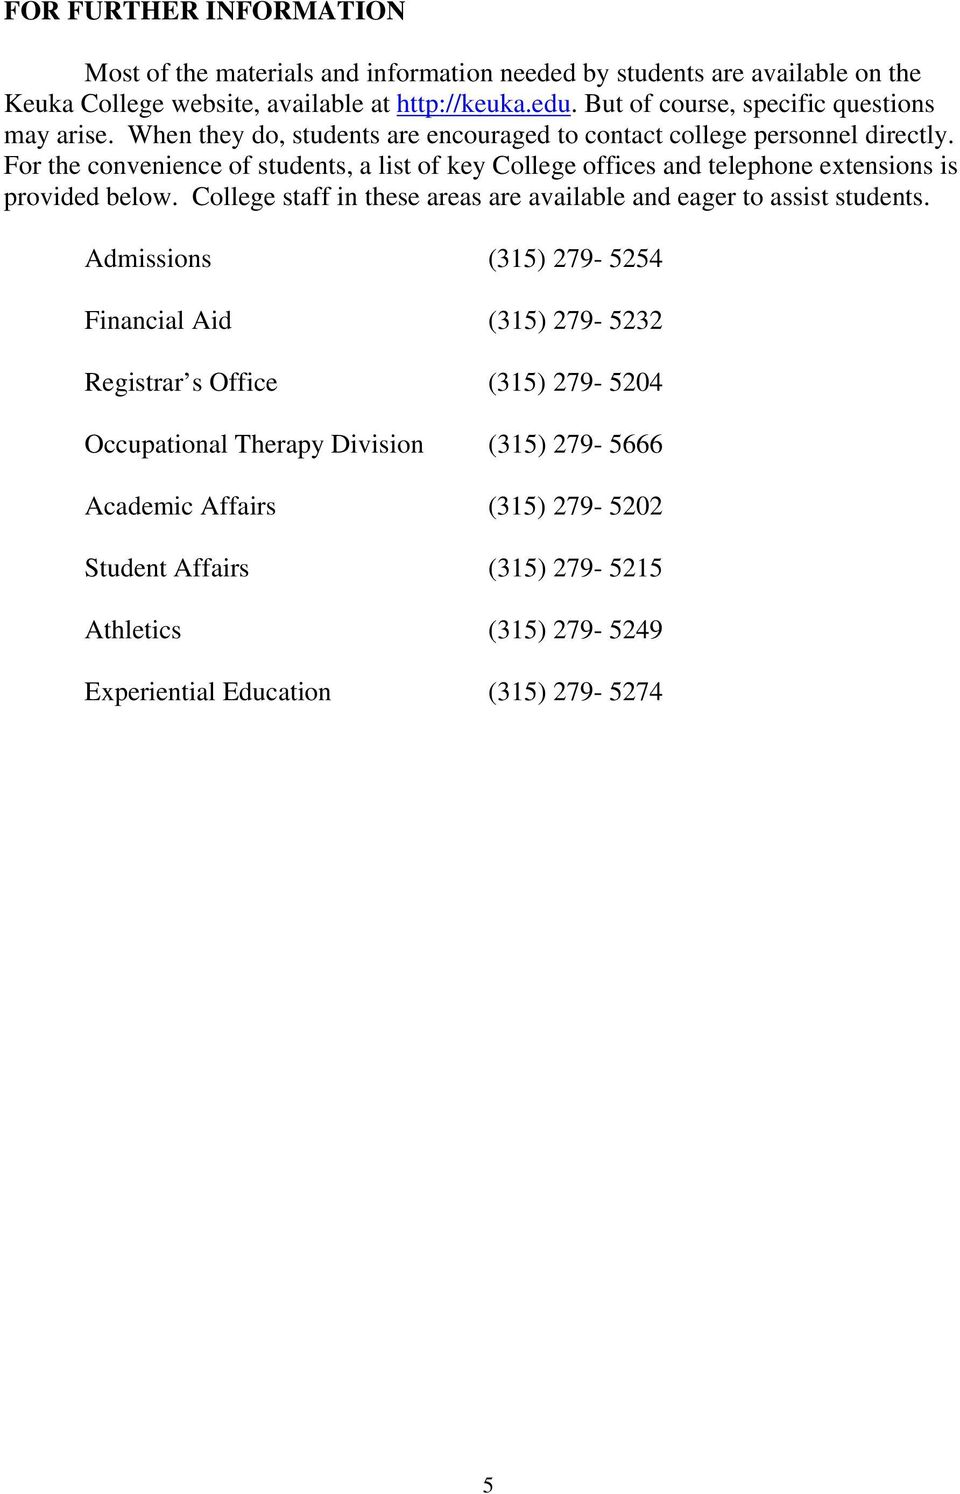 For the convenience of students, a list of key College offices and telephone extensions is provided below. College staff in these areas are available and eager to assist students.